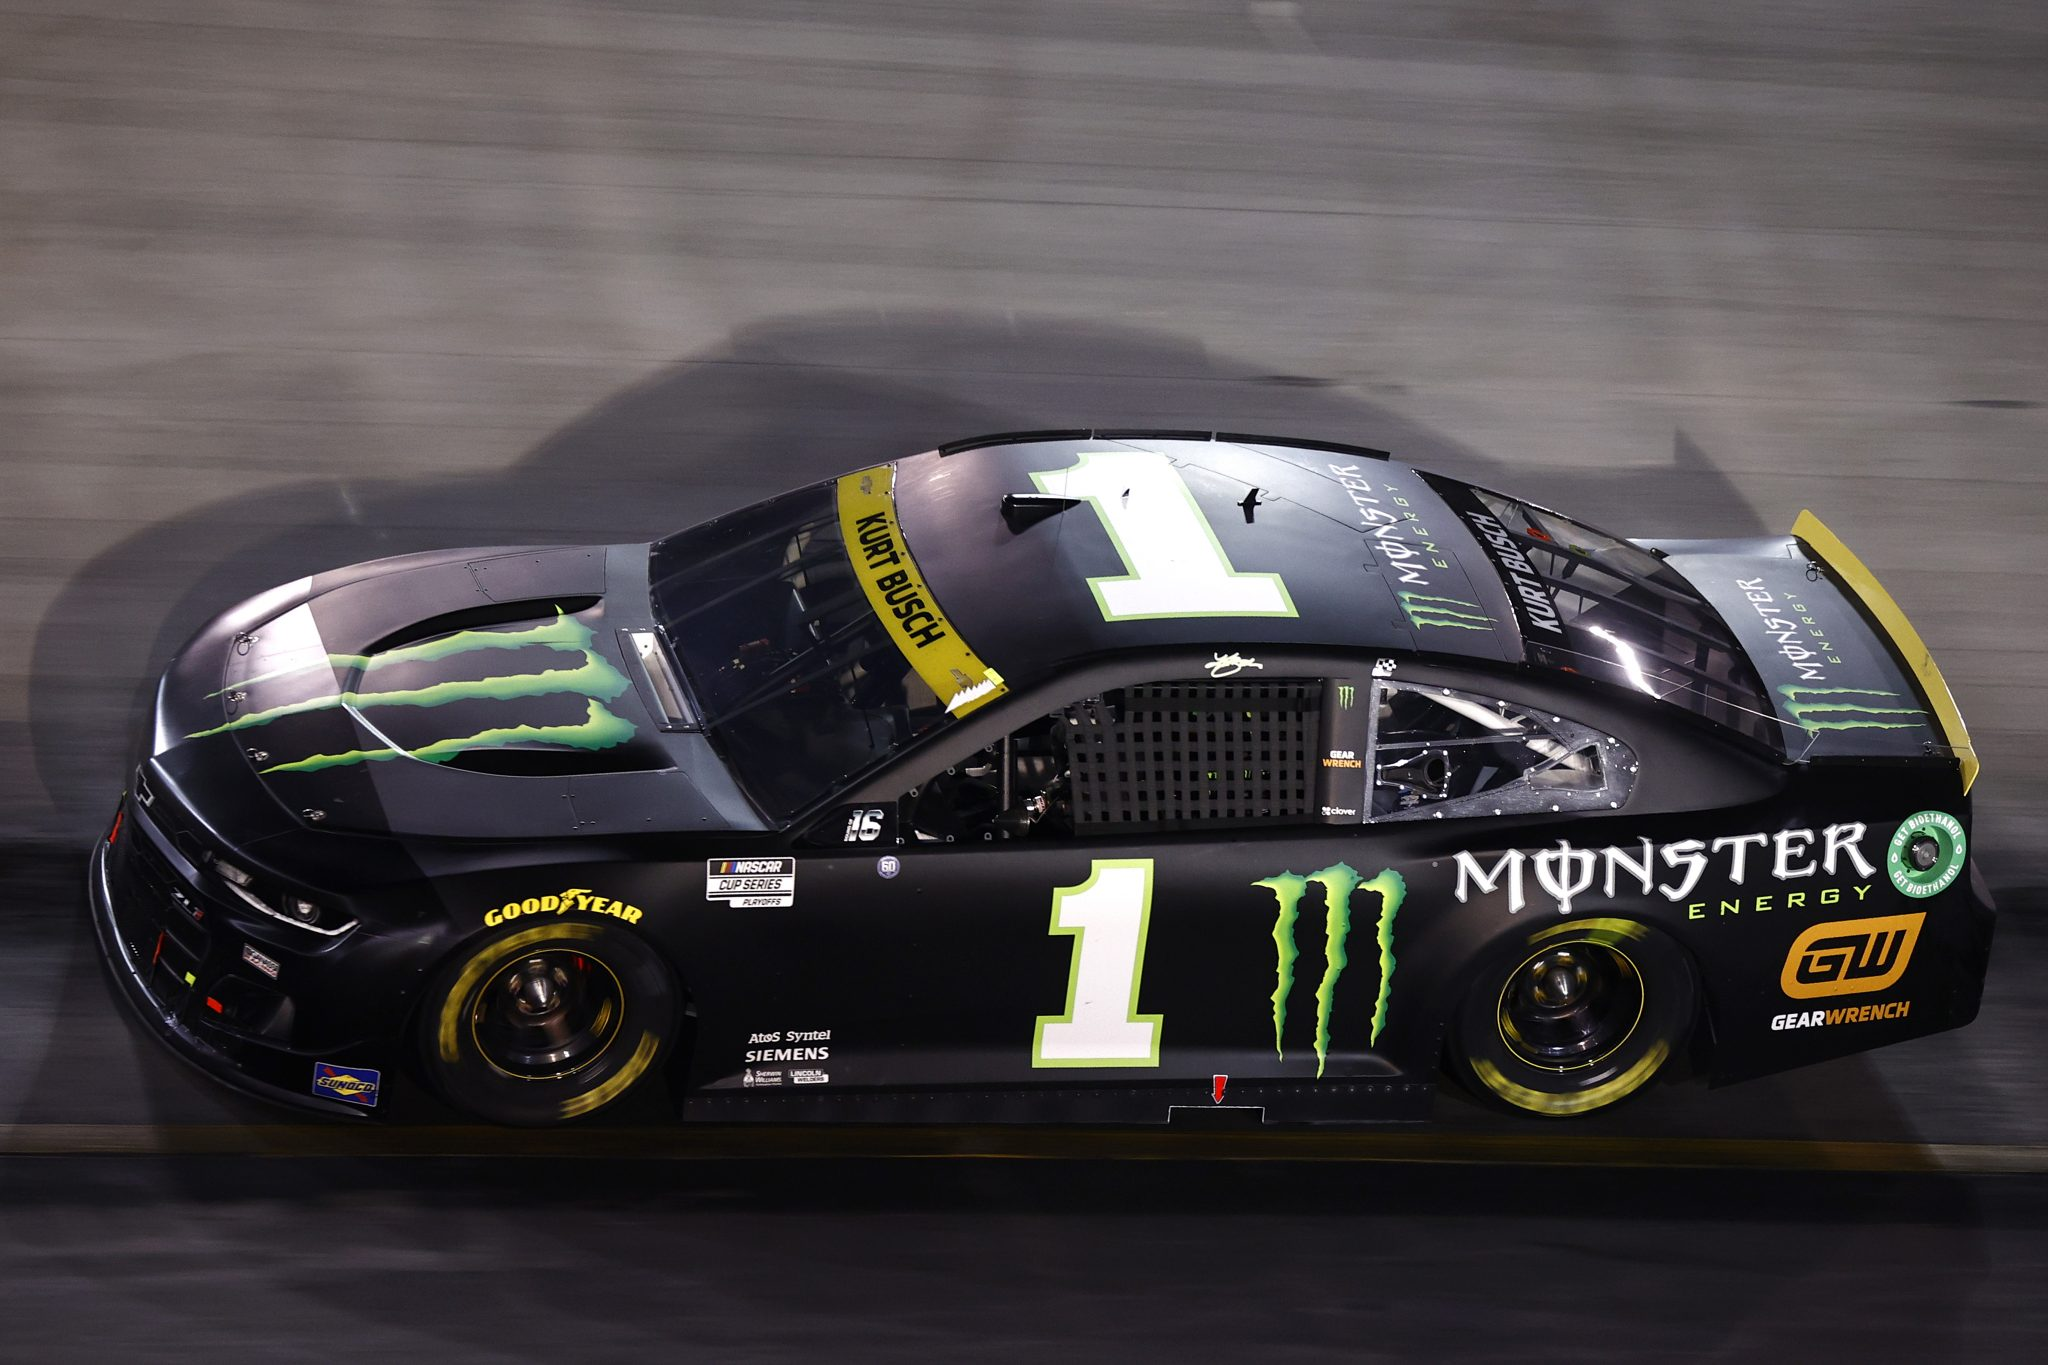 BRISTOL, TENNESSEE - SEPTEMBER 18: Kurt Busch, driver of the #1 Monster Energy Chevrolet, drives during the NASCAR Cup Series Bass Pro Shops Night Race at Bristol Motor Speedway on September 18, 2021 in Bristol, Tennessee. (Photo by Jared C. Tilton/Getty Images) | Getty Images